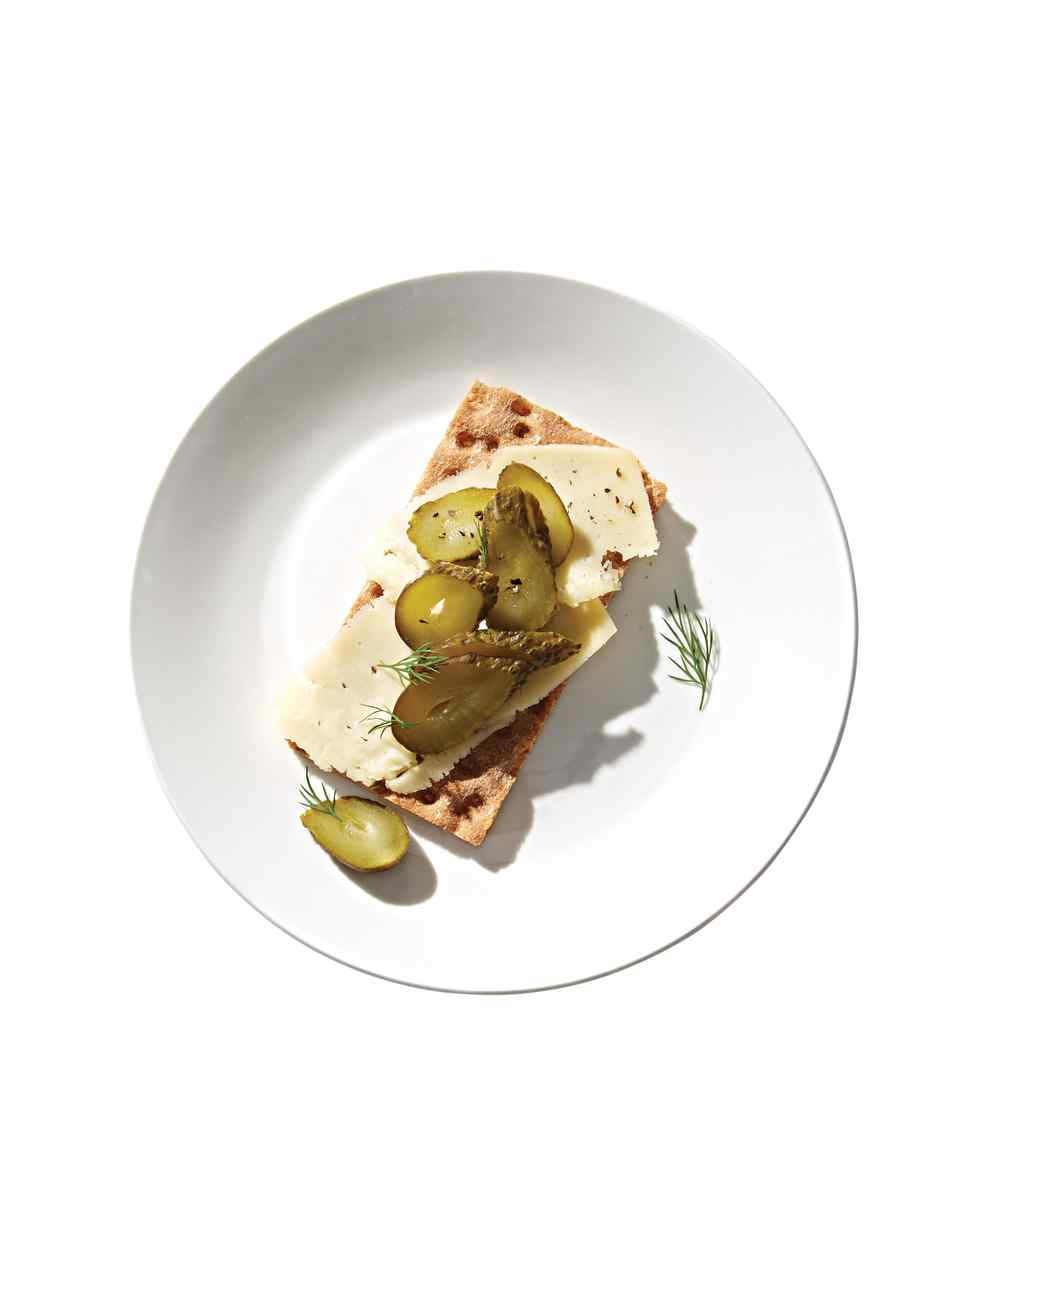 cheese-and-crackers-with-pickles-235-d112983_l.jpg